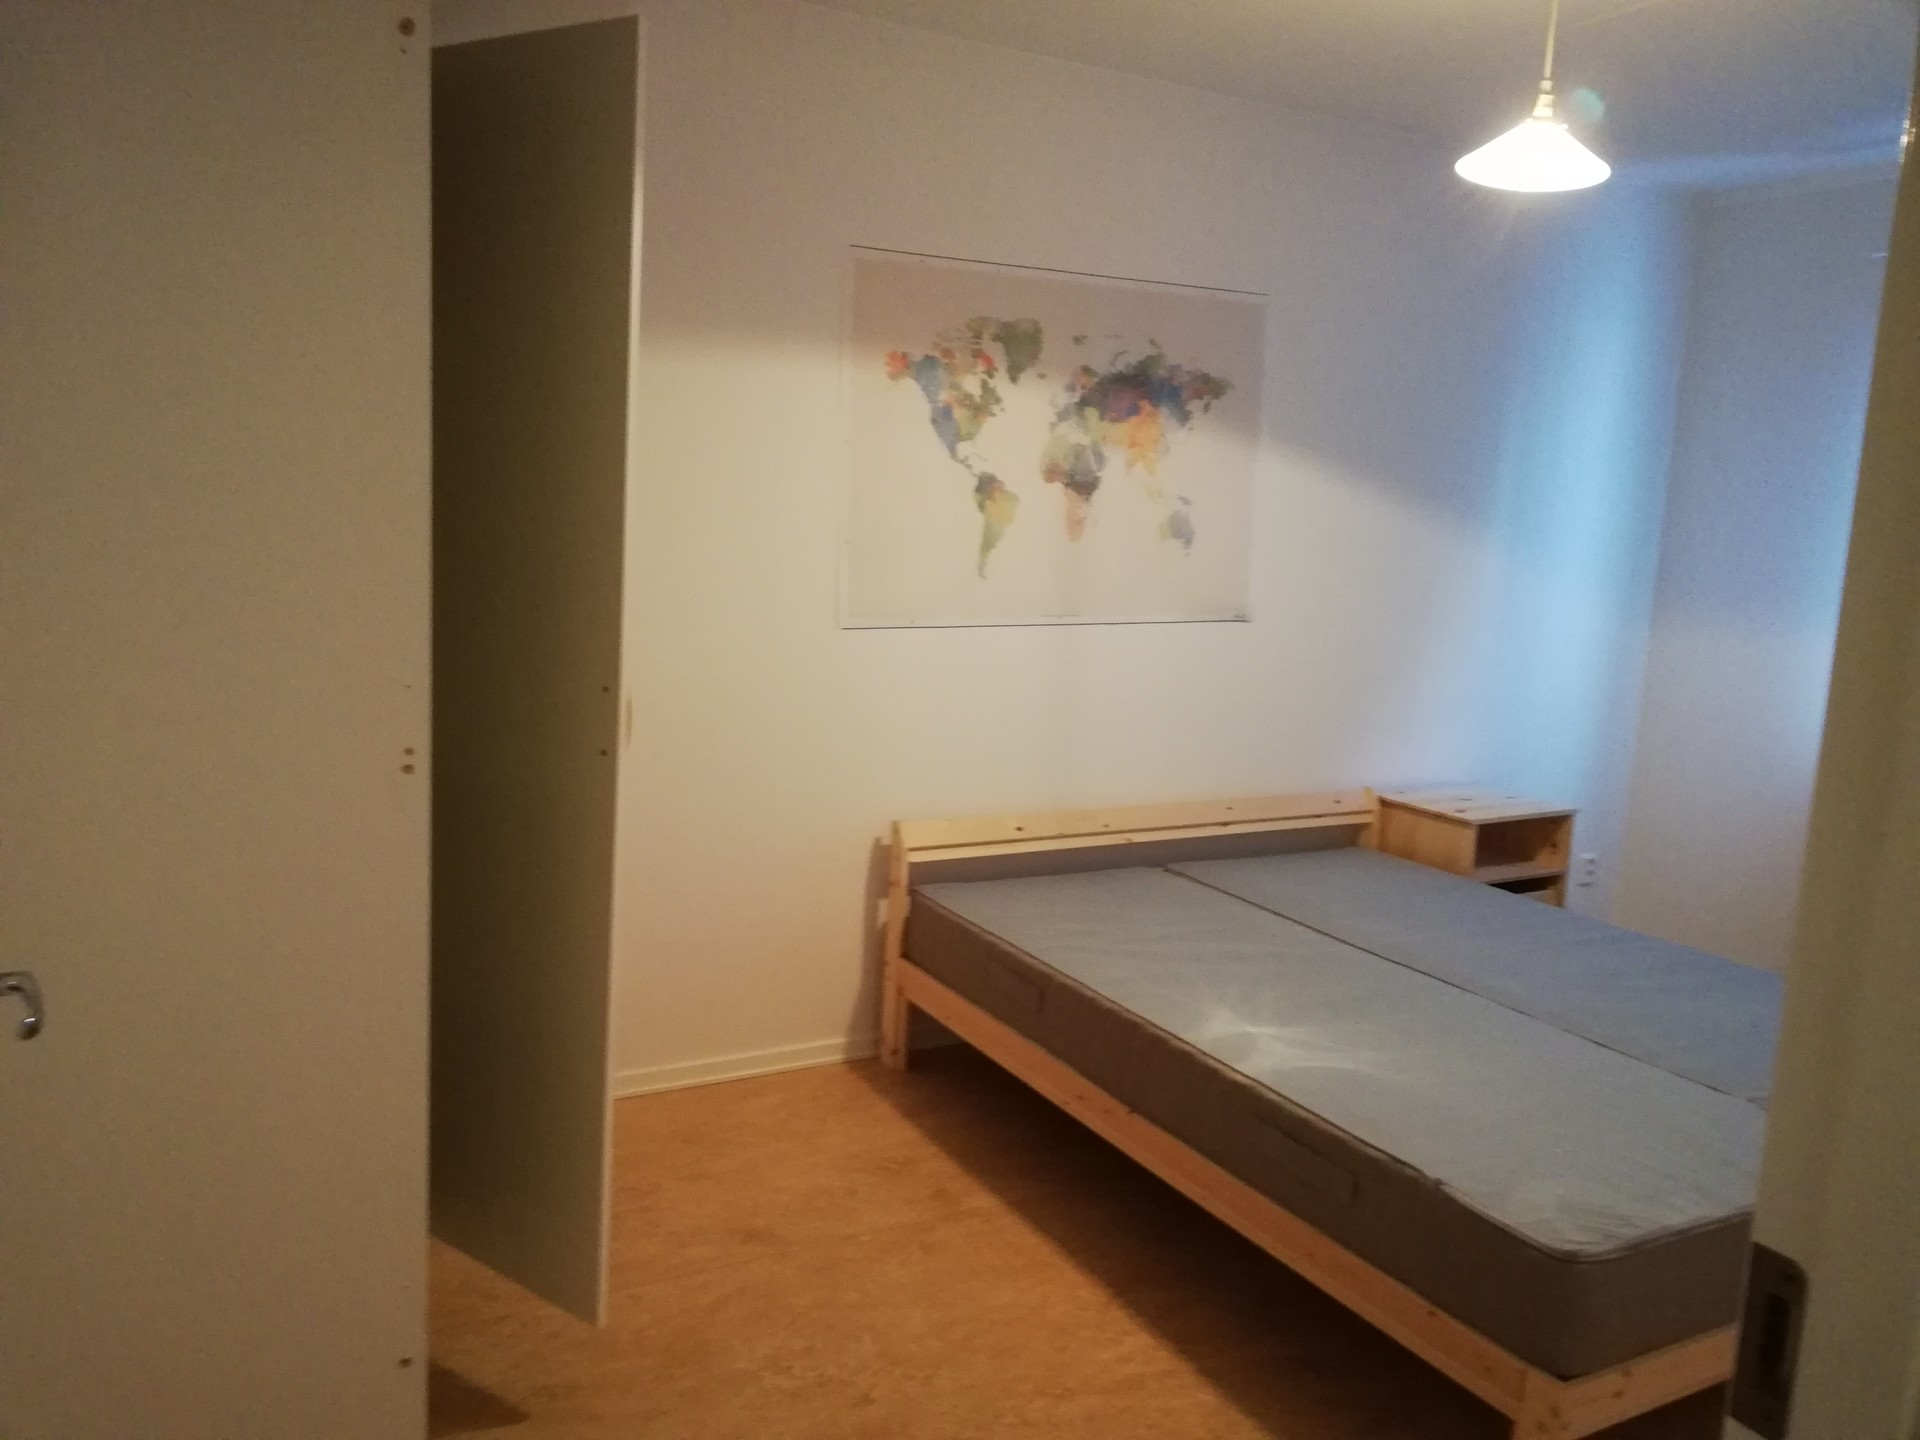 Normal size roon 18 Sq meters for rent in Stockholm